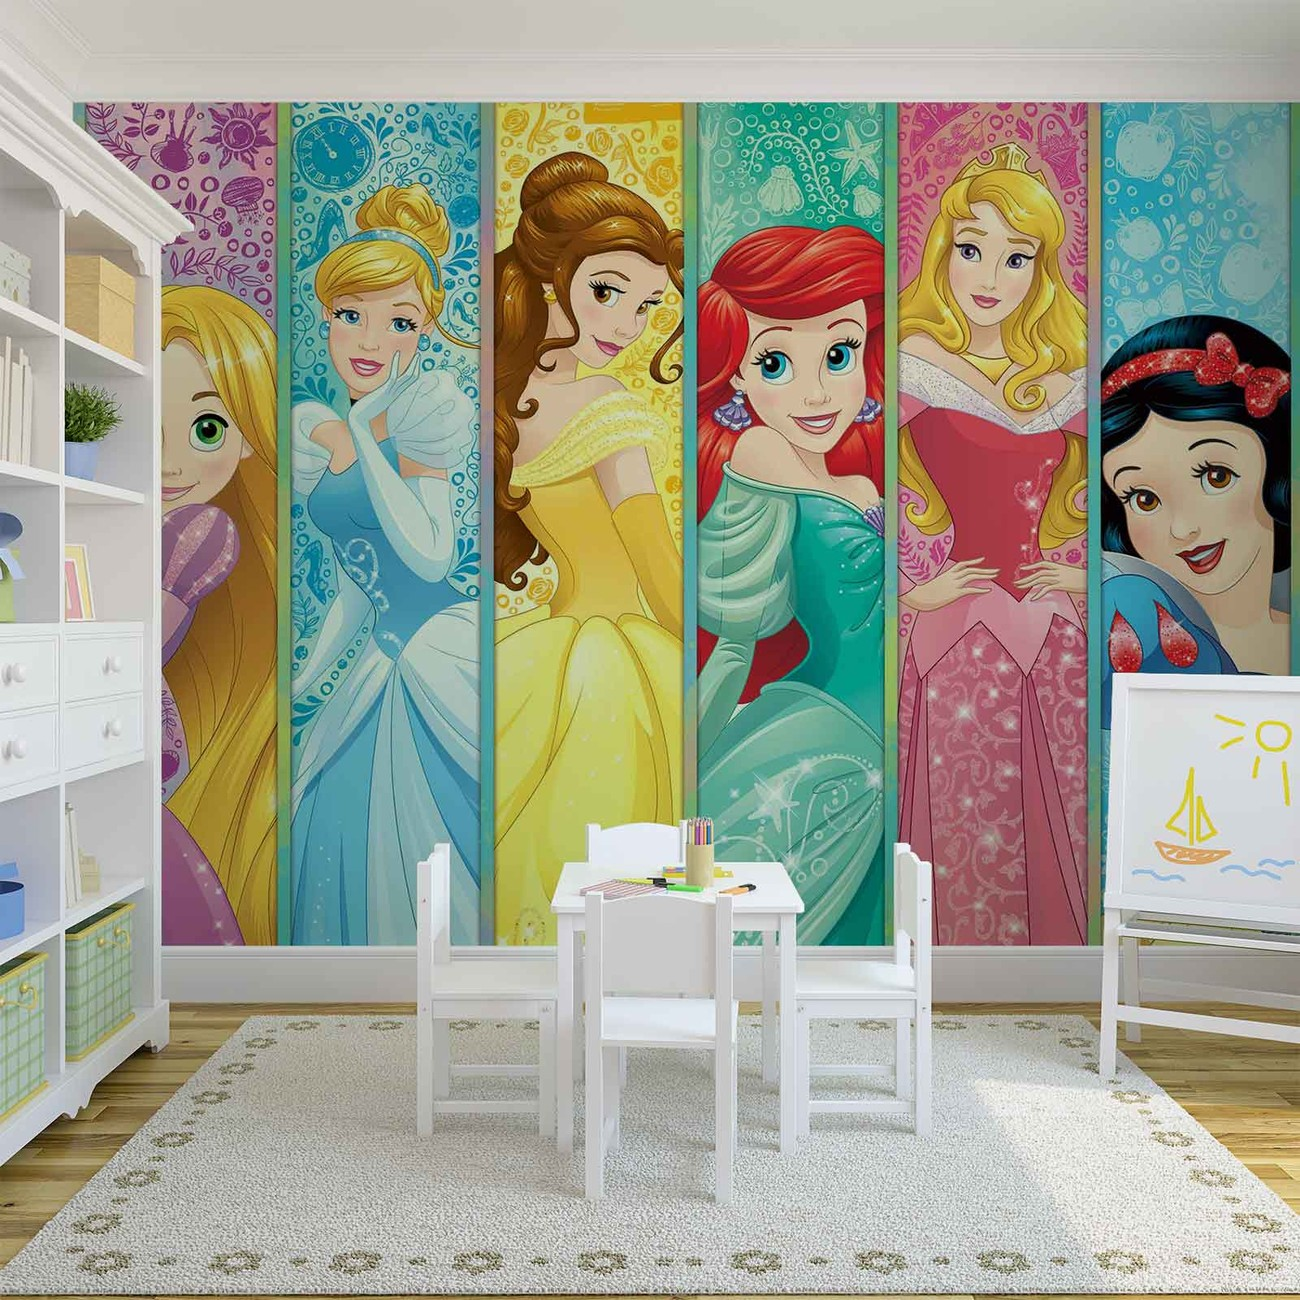 Disney princesses aurora belle ariel wall paper mural for Disney ariel wall mural